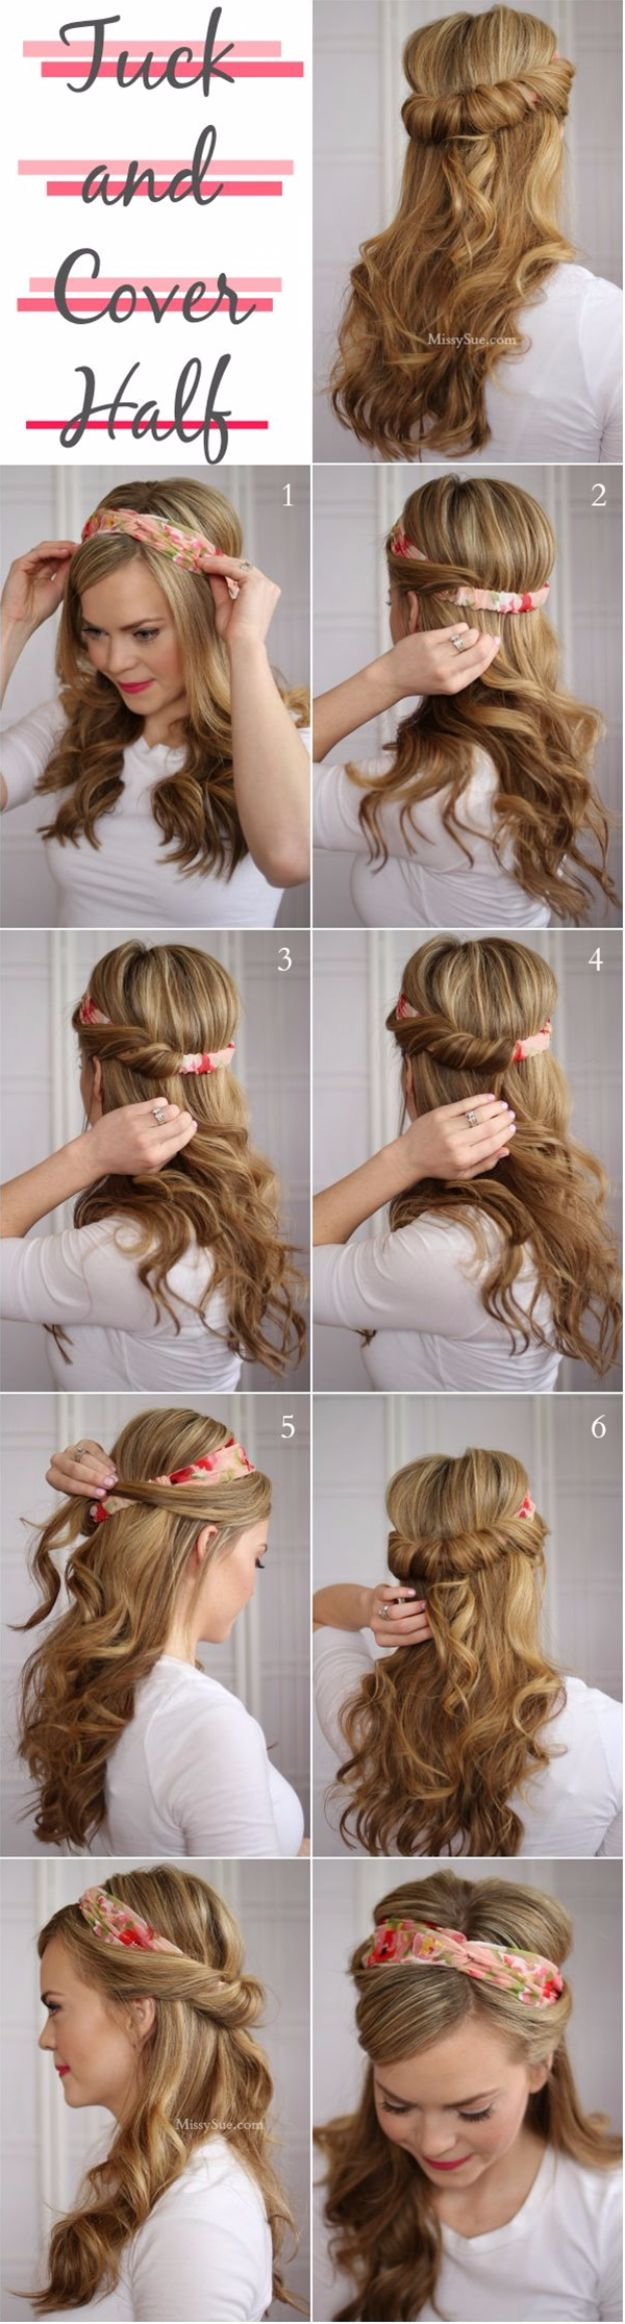 Tuck-and-Cover-Half-Up-Hairstyle